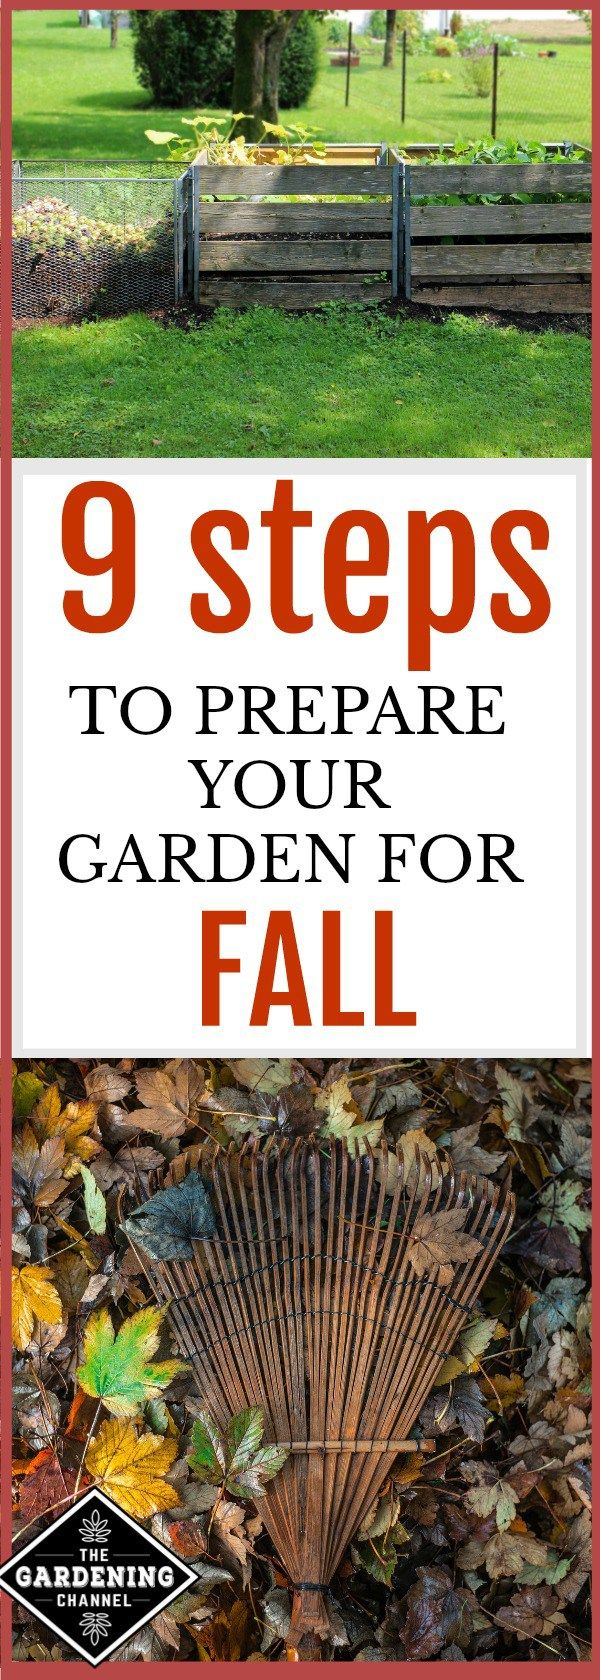 Keep Your Fall Gardening Simple: 9 Ways to Prepare for The Season